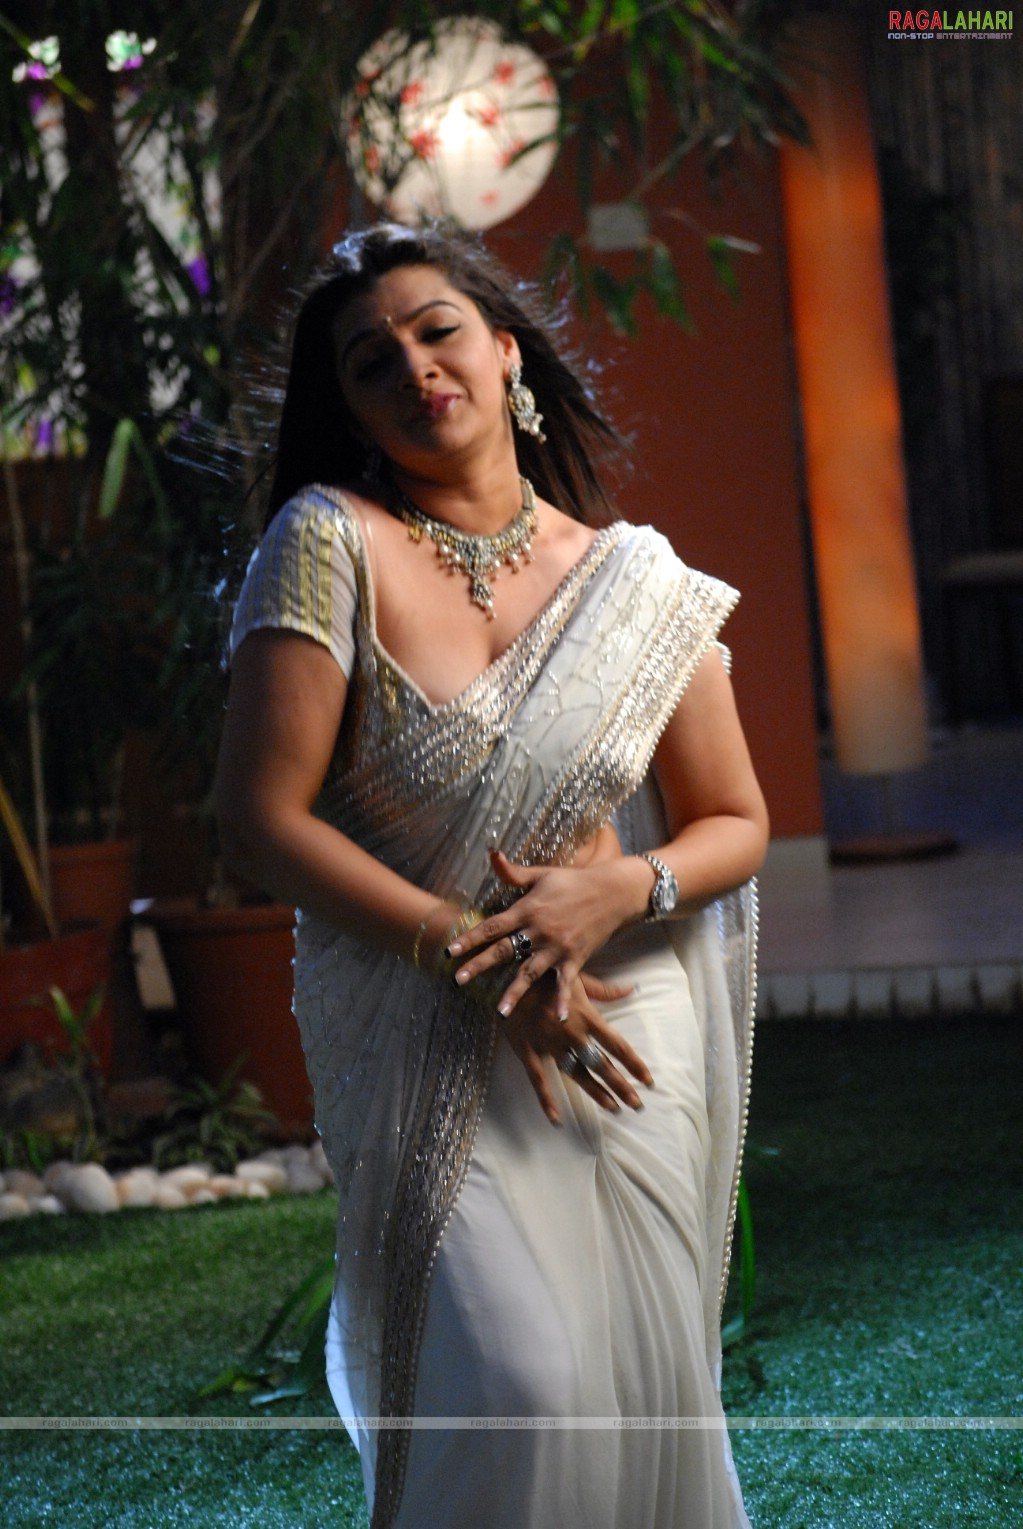 Indian Actress Aarthi Agarwal Hot In Saree Showing Her -9562